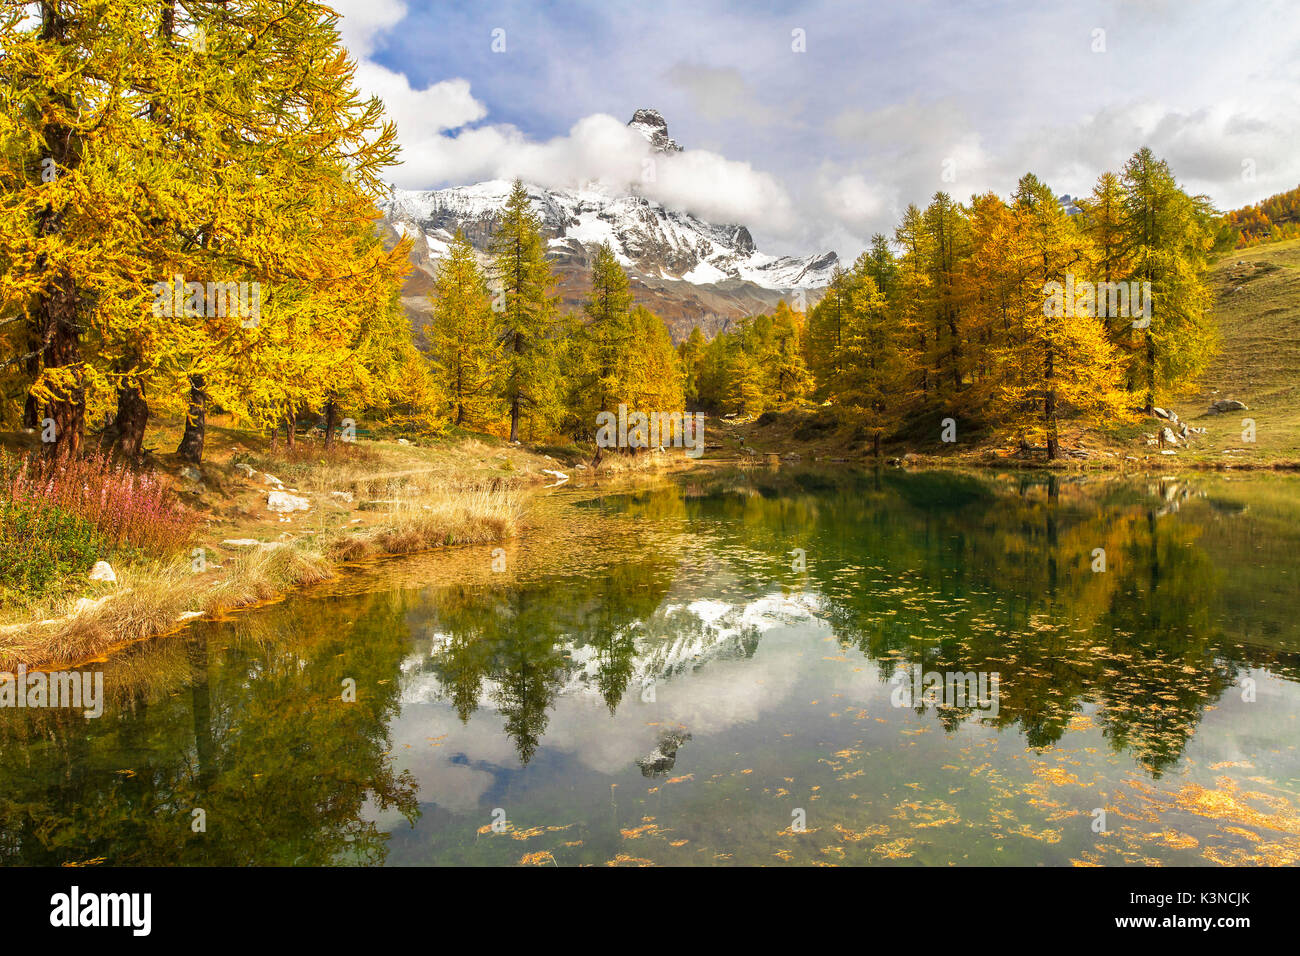 The Matterhorn stands out among the clouds and it is reflected in the small lake Blu surrounded by colorful trees in autumn (Cervinia, Valtournenche, Aosta province, Aosta Valley, Italy, Europe) - Stock Image